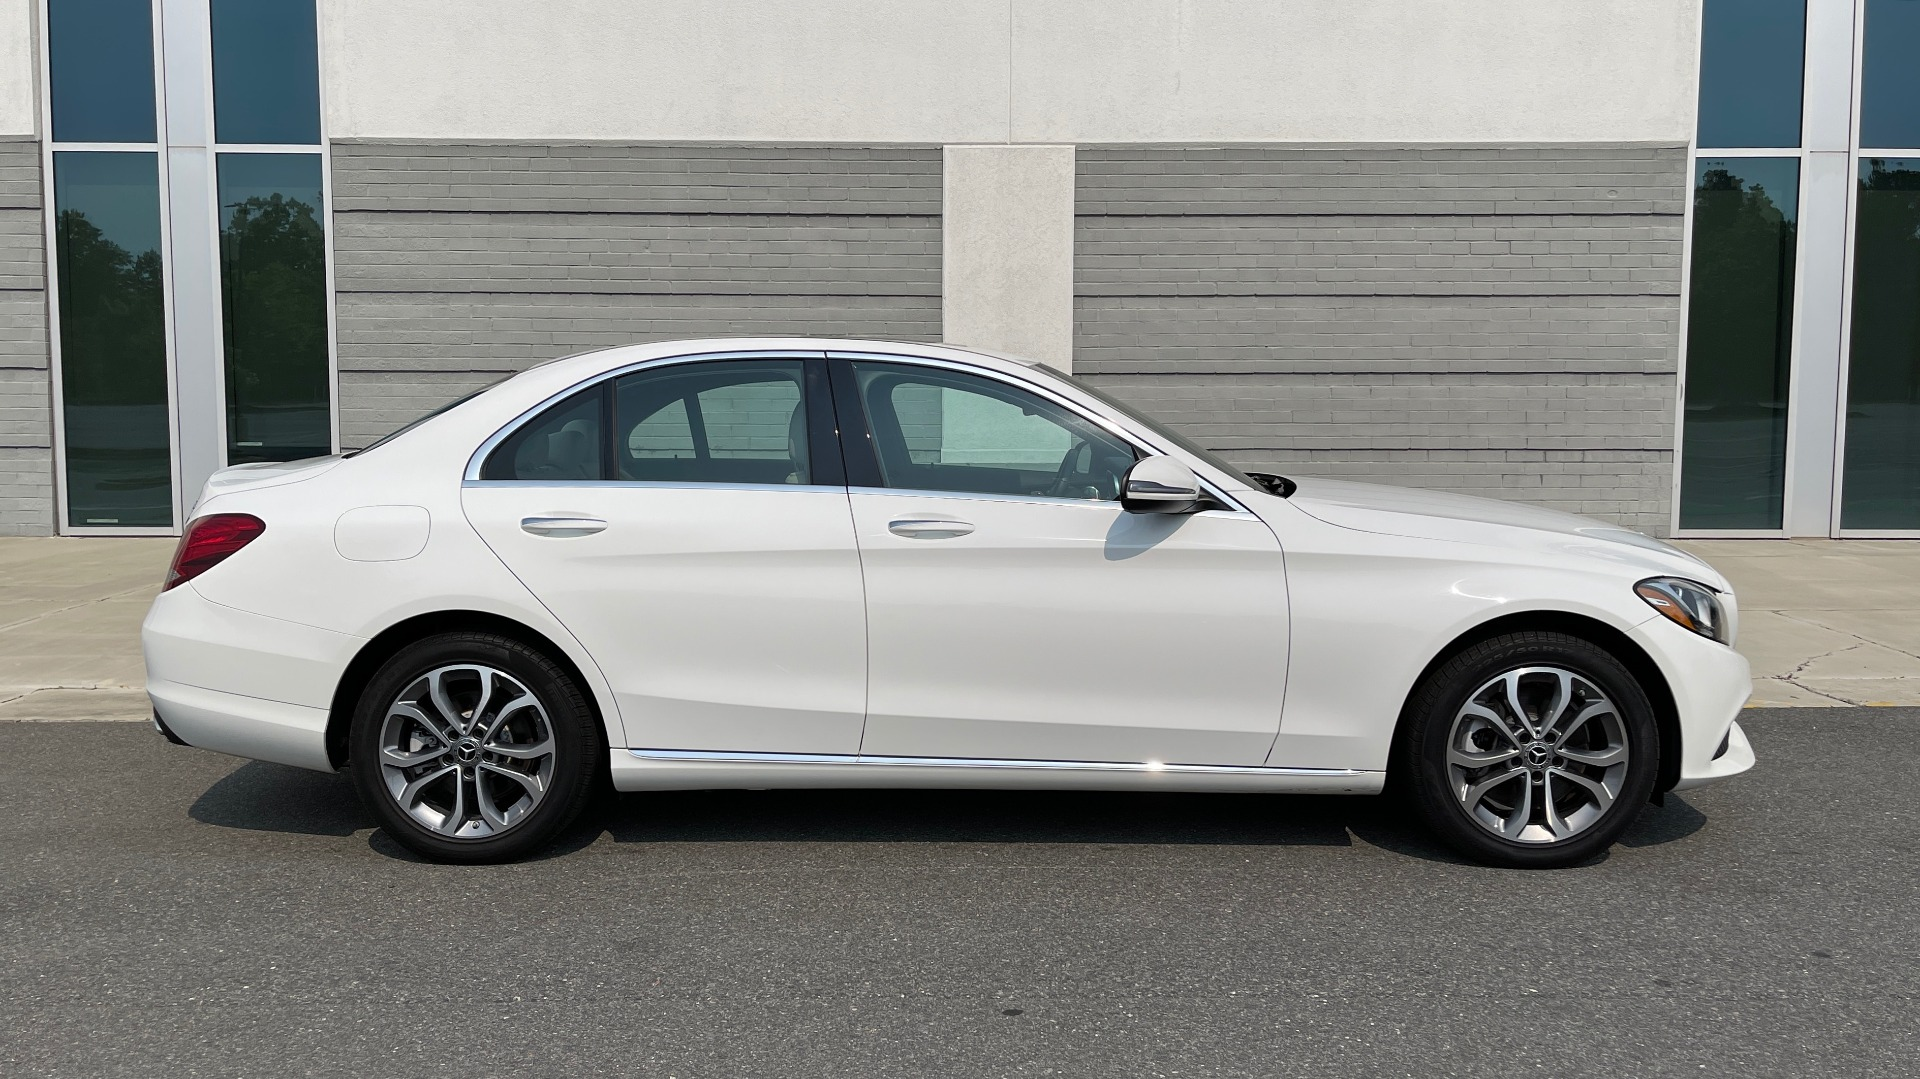 Used 2018 Mercedes-Benz C-Class C 300 4MATIC / PREMIUM / BURMESTER / HTD STS / SUNROOF / REARVIEW for sale $33,995 at Formula Imports in Charlotte NC 28227 7